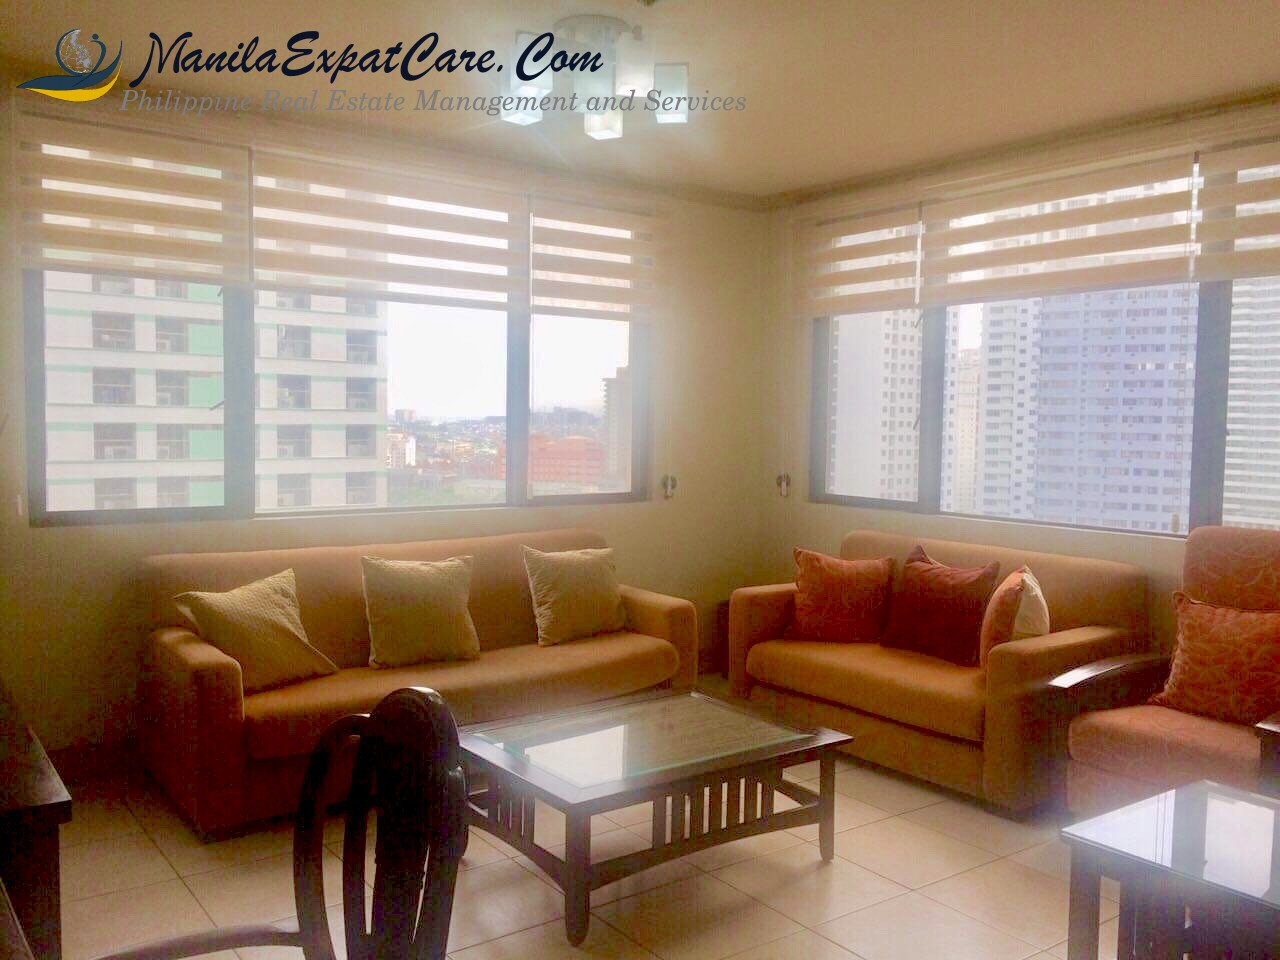 Greenbelt 1 bedroom condo for rent in Legaspi, Makati - Biltmore